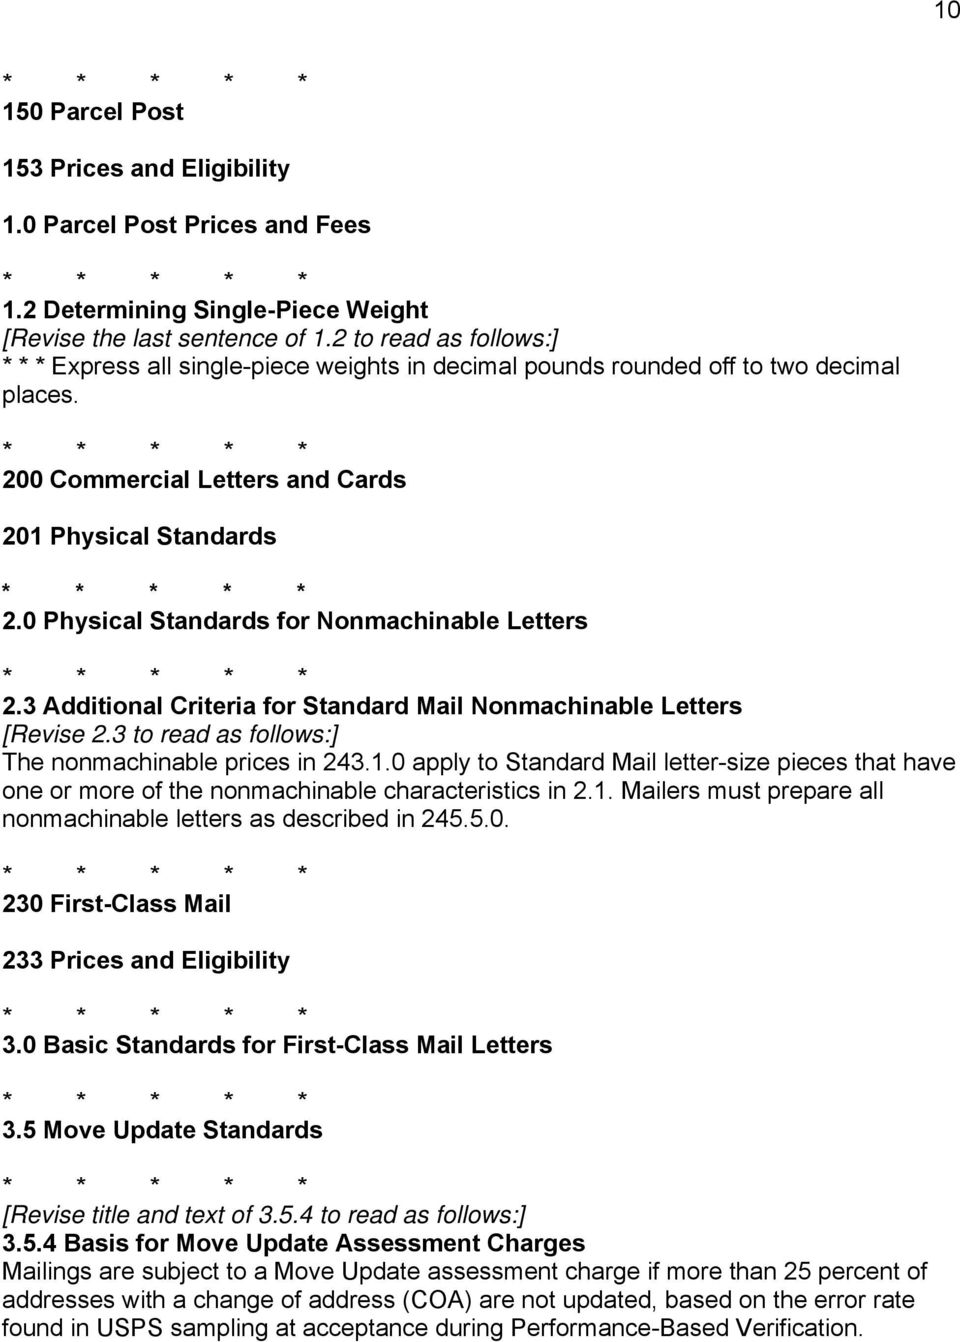 0 Physical Standards for Nonmachinable Letters 2.3 Additional Criteria for Standard Mail Nonmachinable Letters [Revise 2.3 to read as follows:] The nonmachinable prices in 243.1.